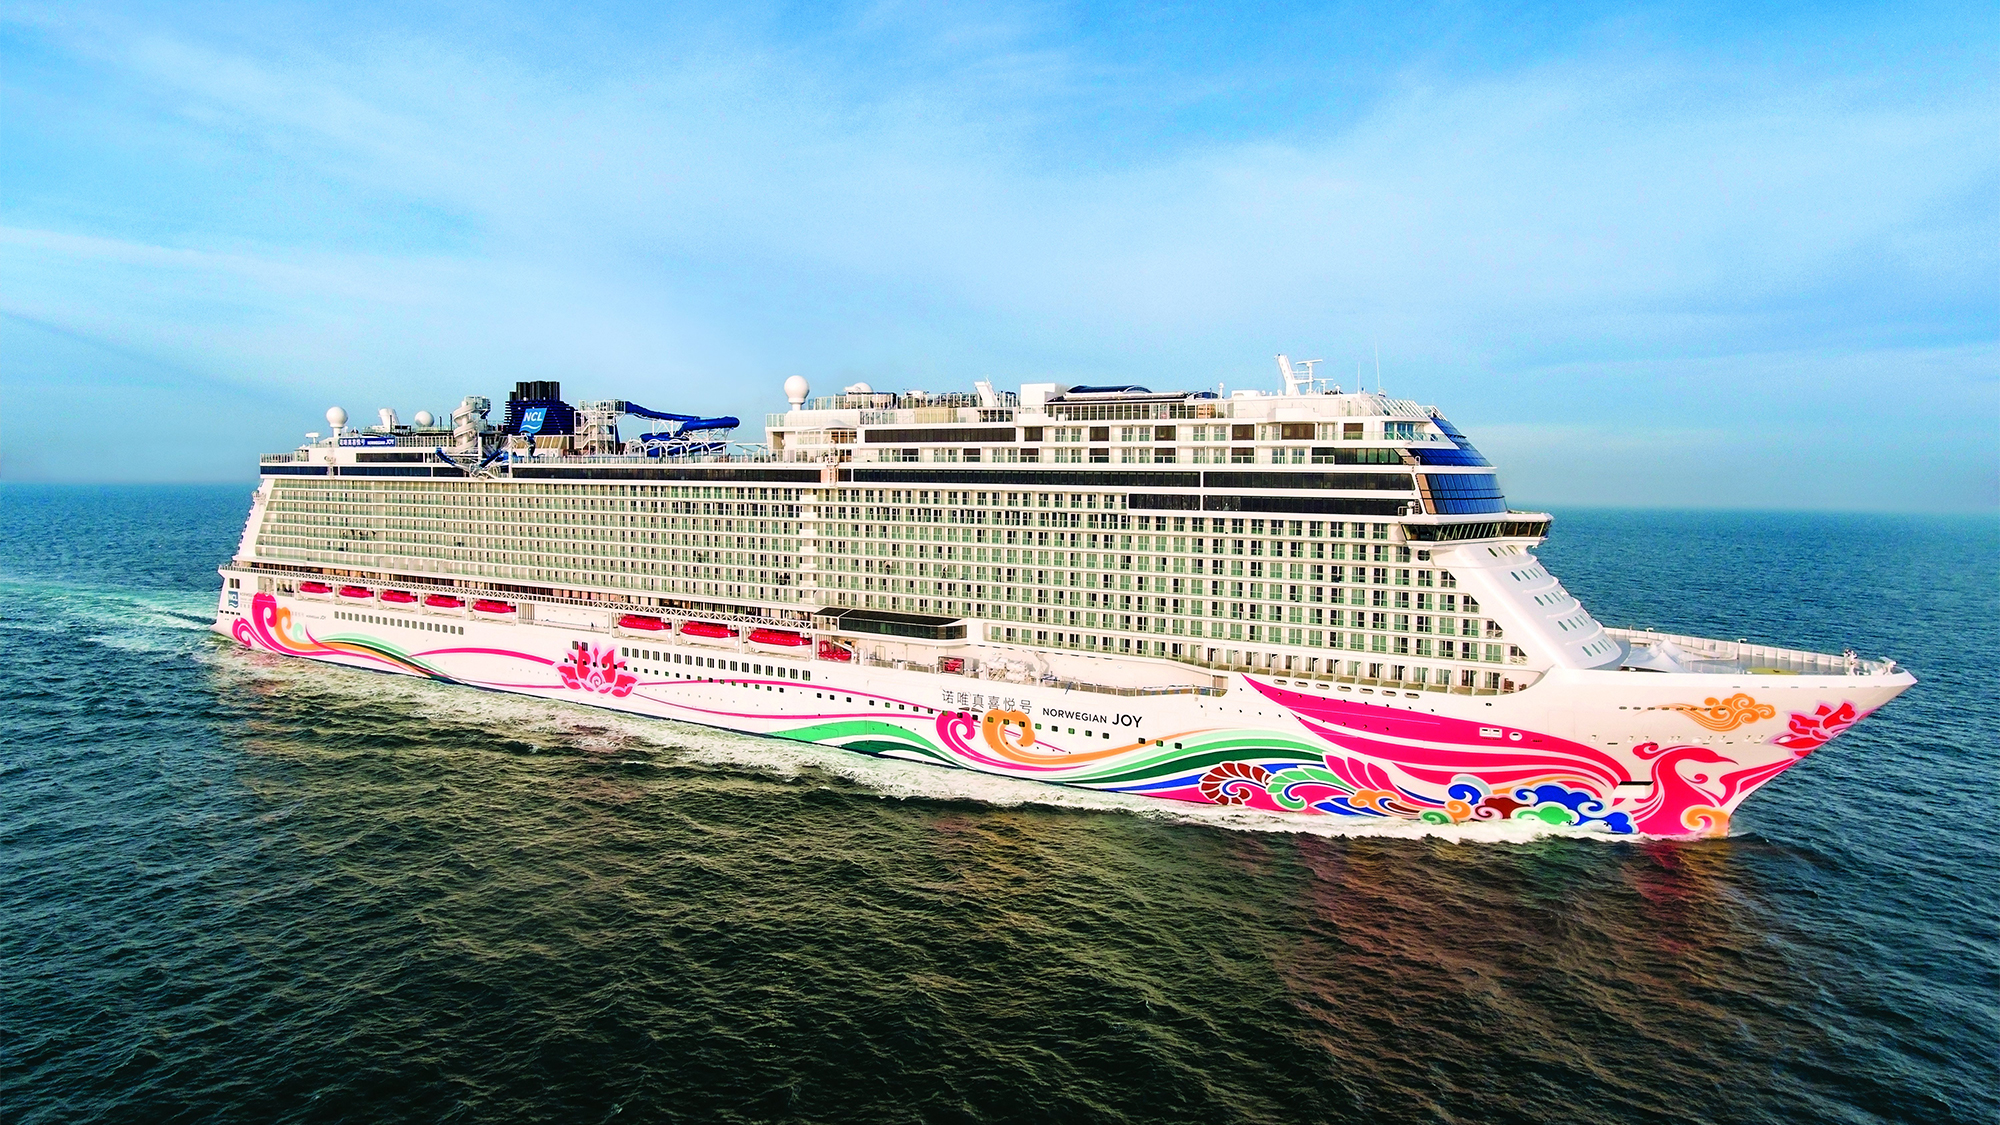 The Norwegian Joy, built for the Chinese market, will move to Alaska next spring.